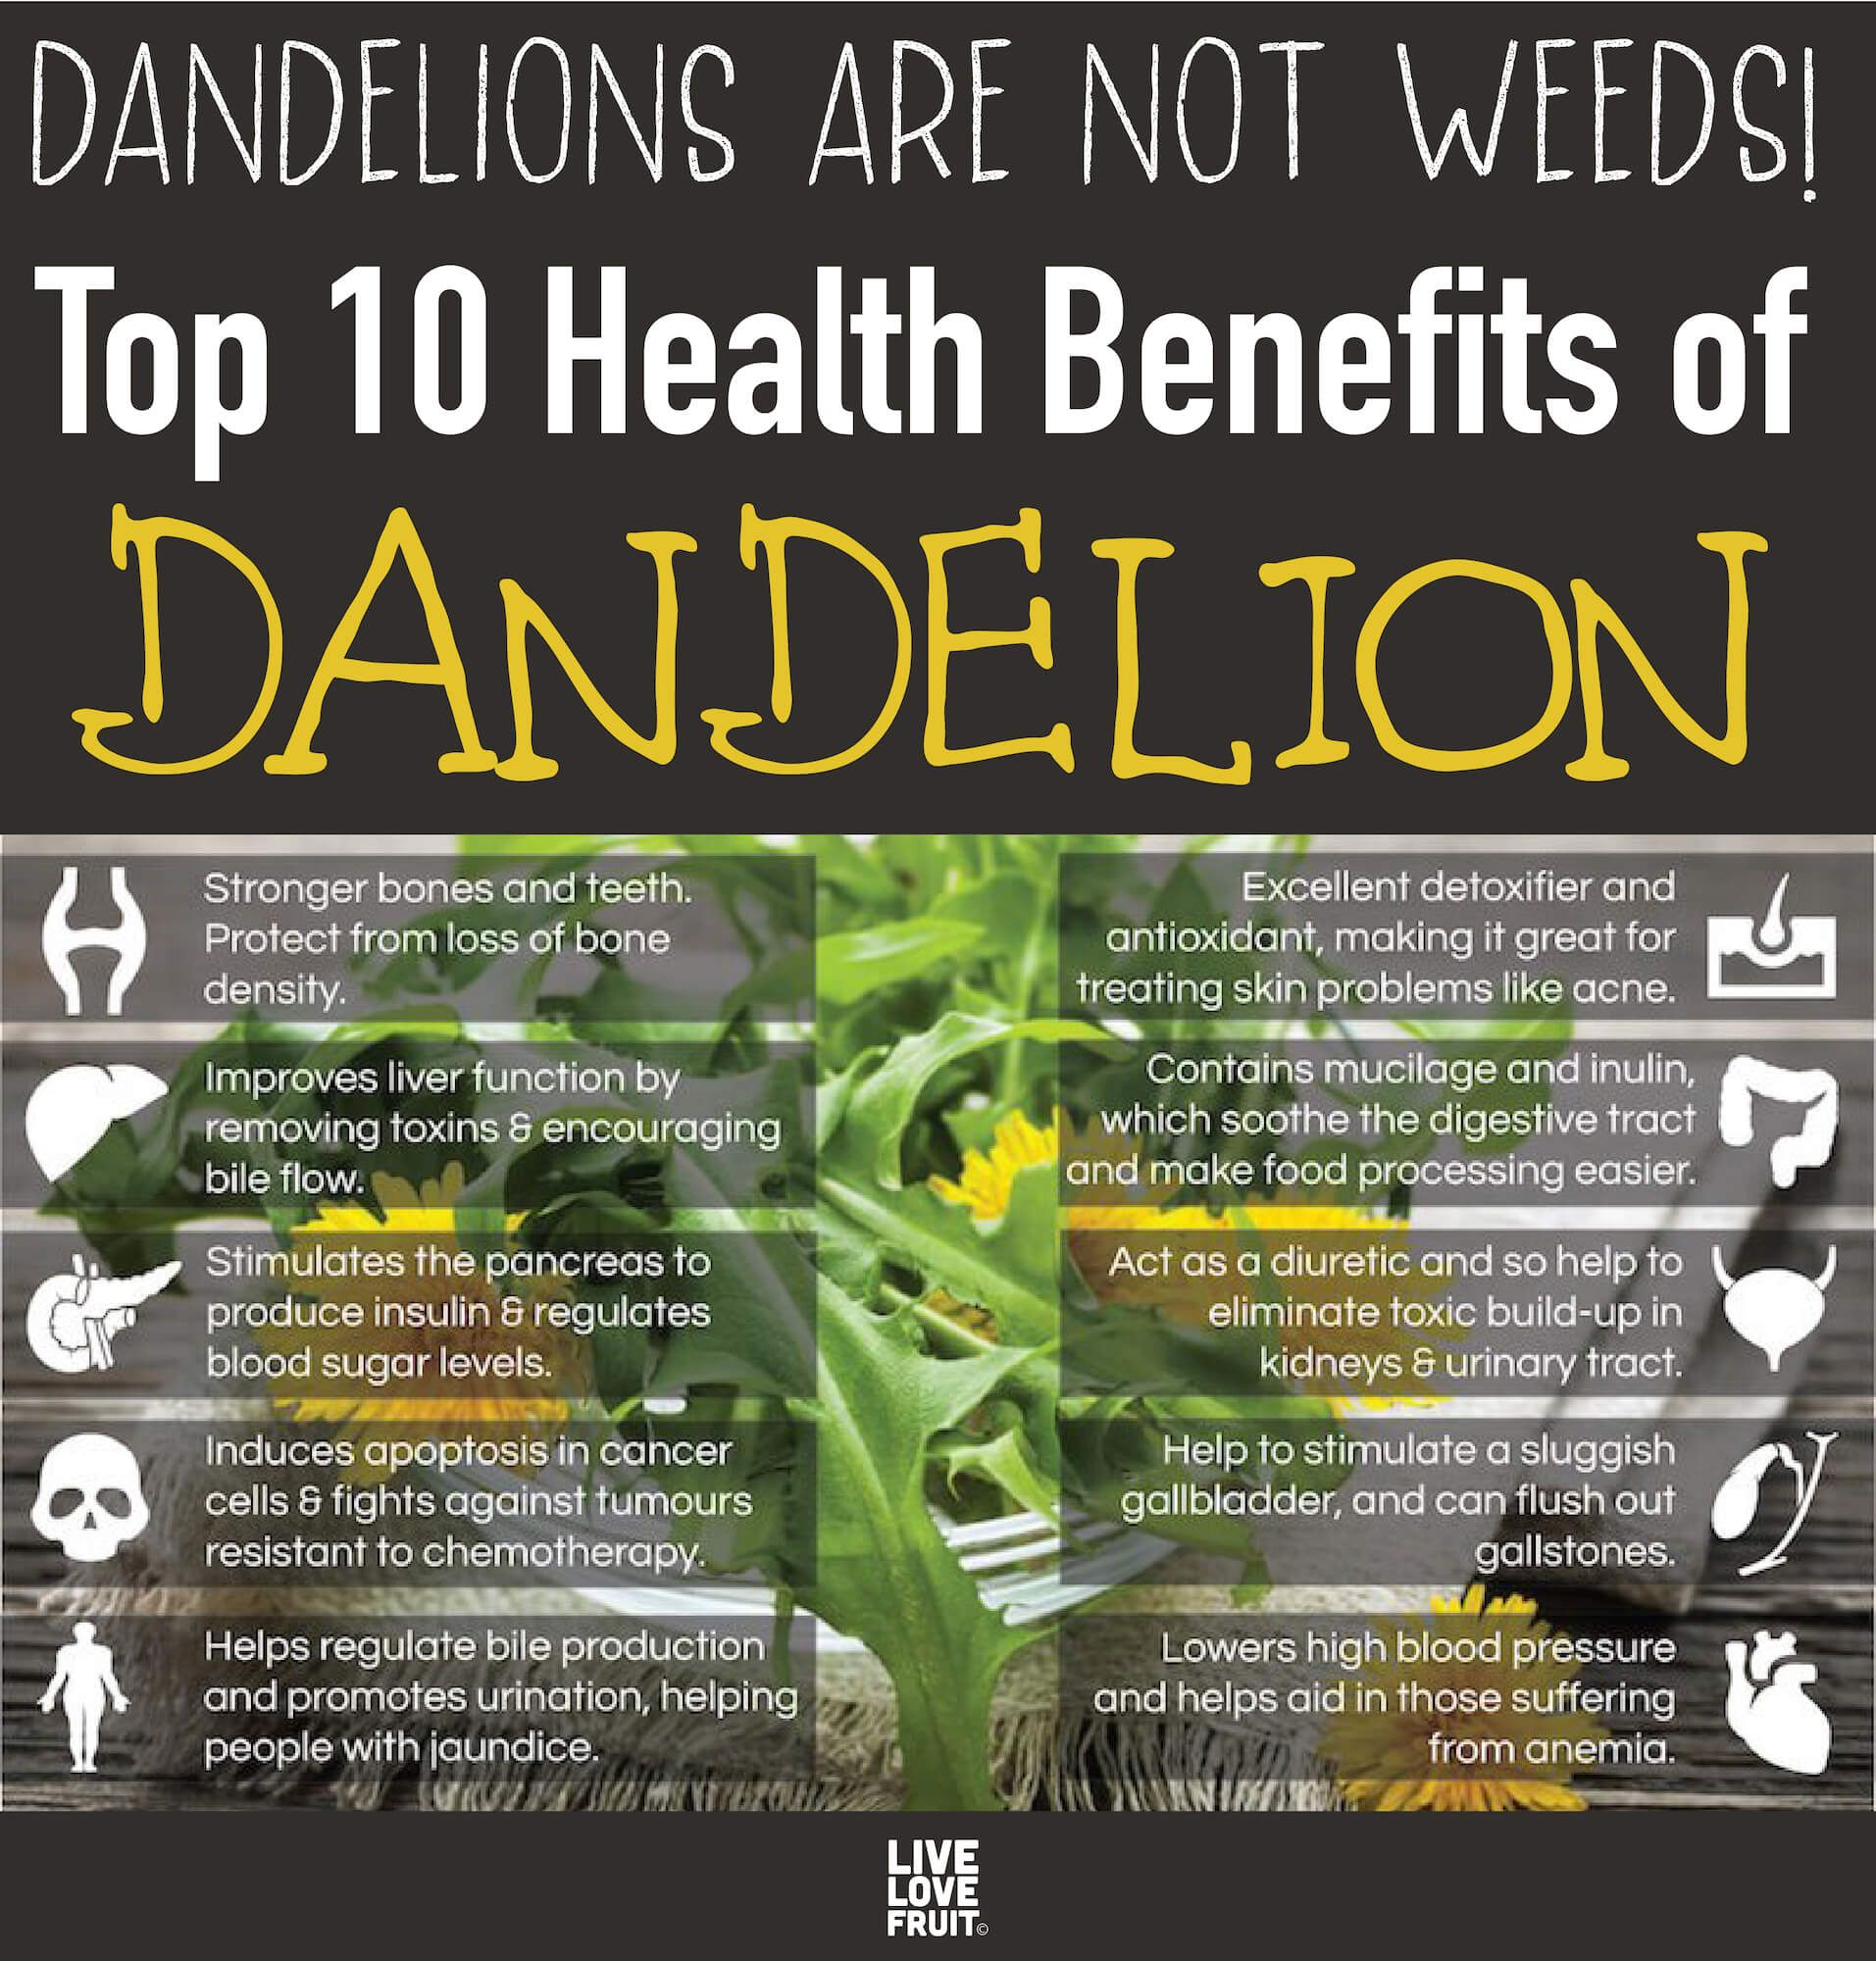 Dandelions Are Not Weeds! They Build Bones Better Than Calcium, Cleanse the Liver and Heal Eczema